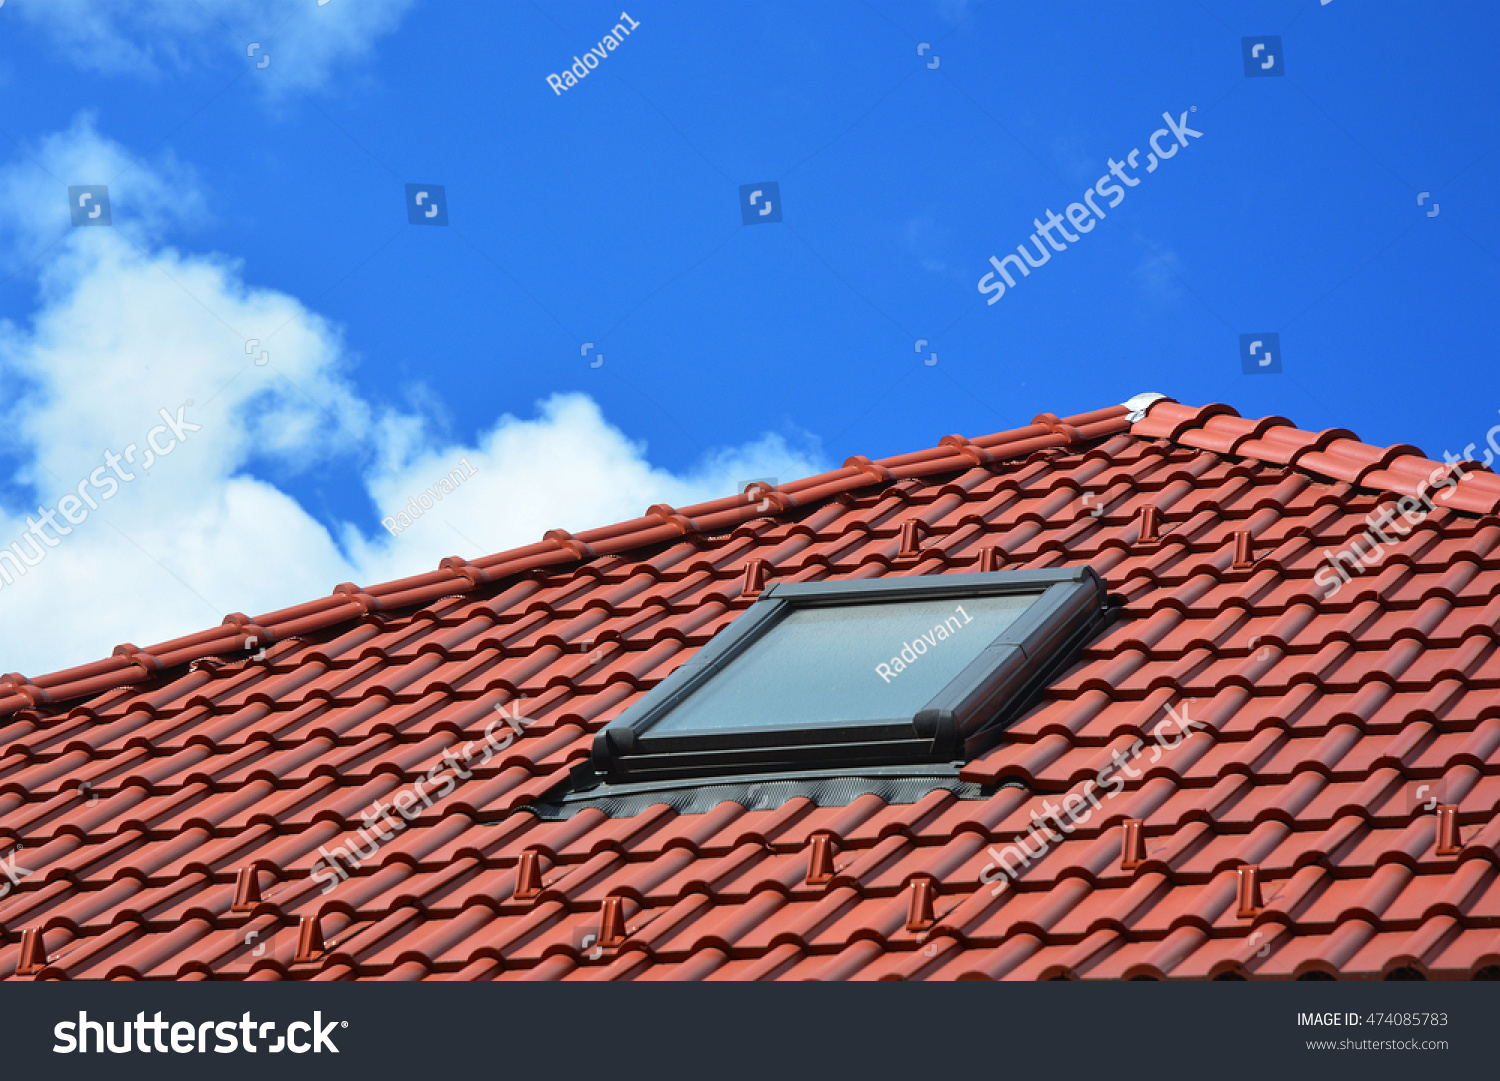 Skylight on red ceramic tiles house stock photo royalty free skylight on red ceramic tiles house roof skylights roof windows and sun tunnels dailygadgetfo Choice Image